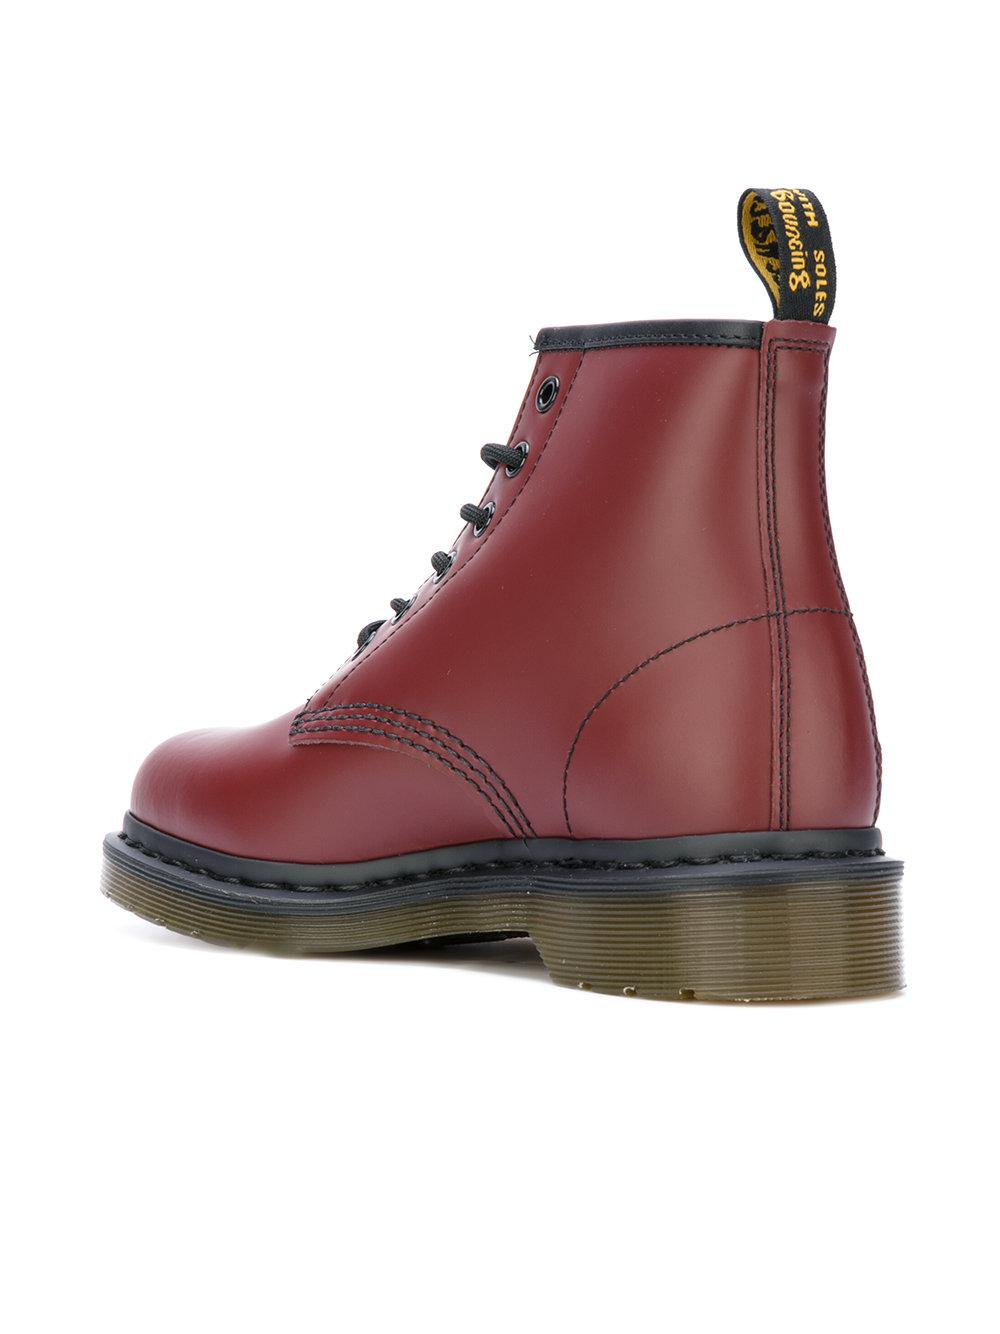 Dr. Martens Leather 101 Smooth Boots in Red